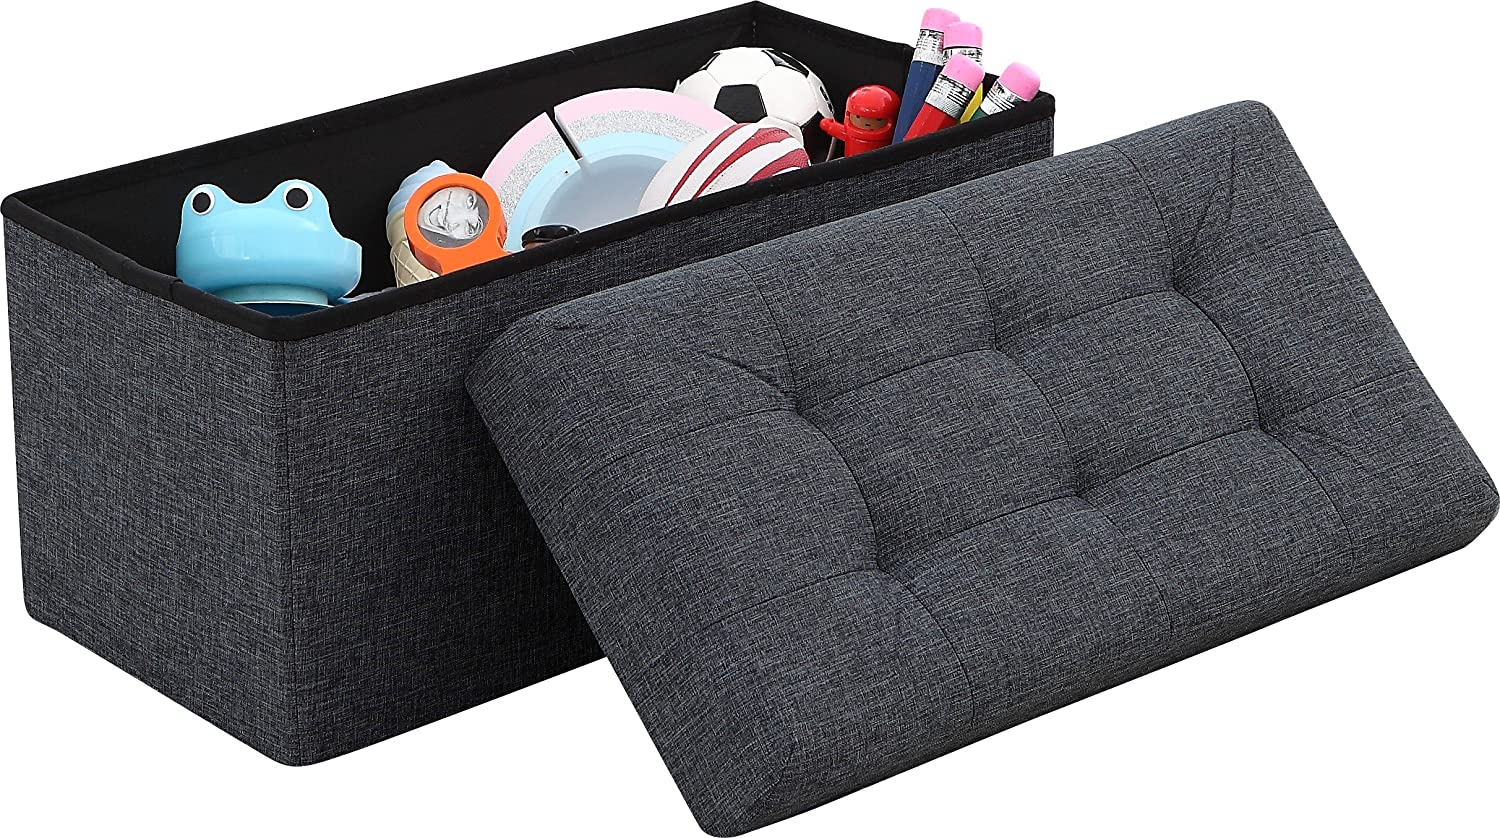 "Ornavo Home Foldable Tufted Linen Large Storage Ottoman Bench Foot Rest Stool/Seat - 15"" x 30"" x 15"" (Black)"